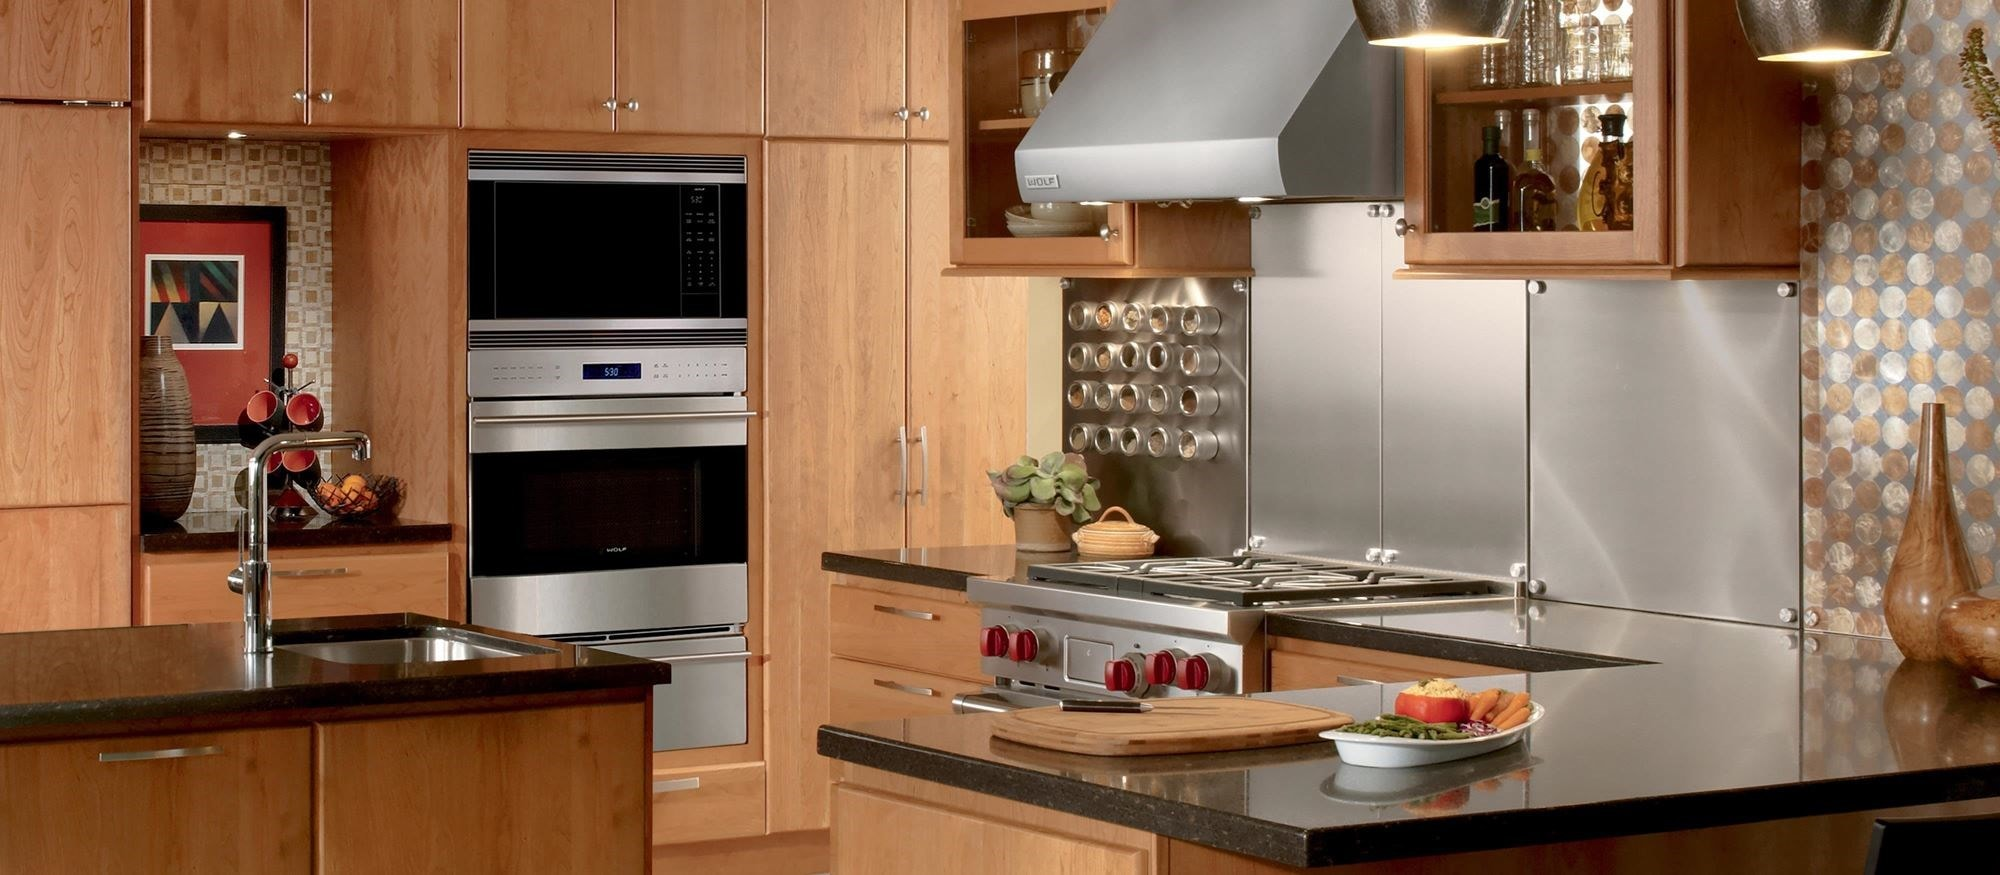 24 standard microwave oven